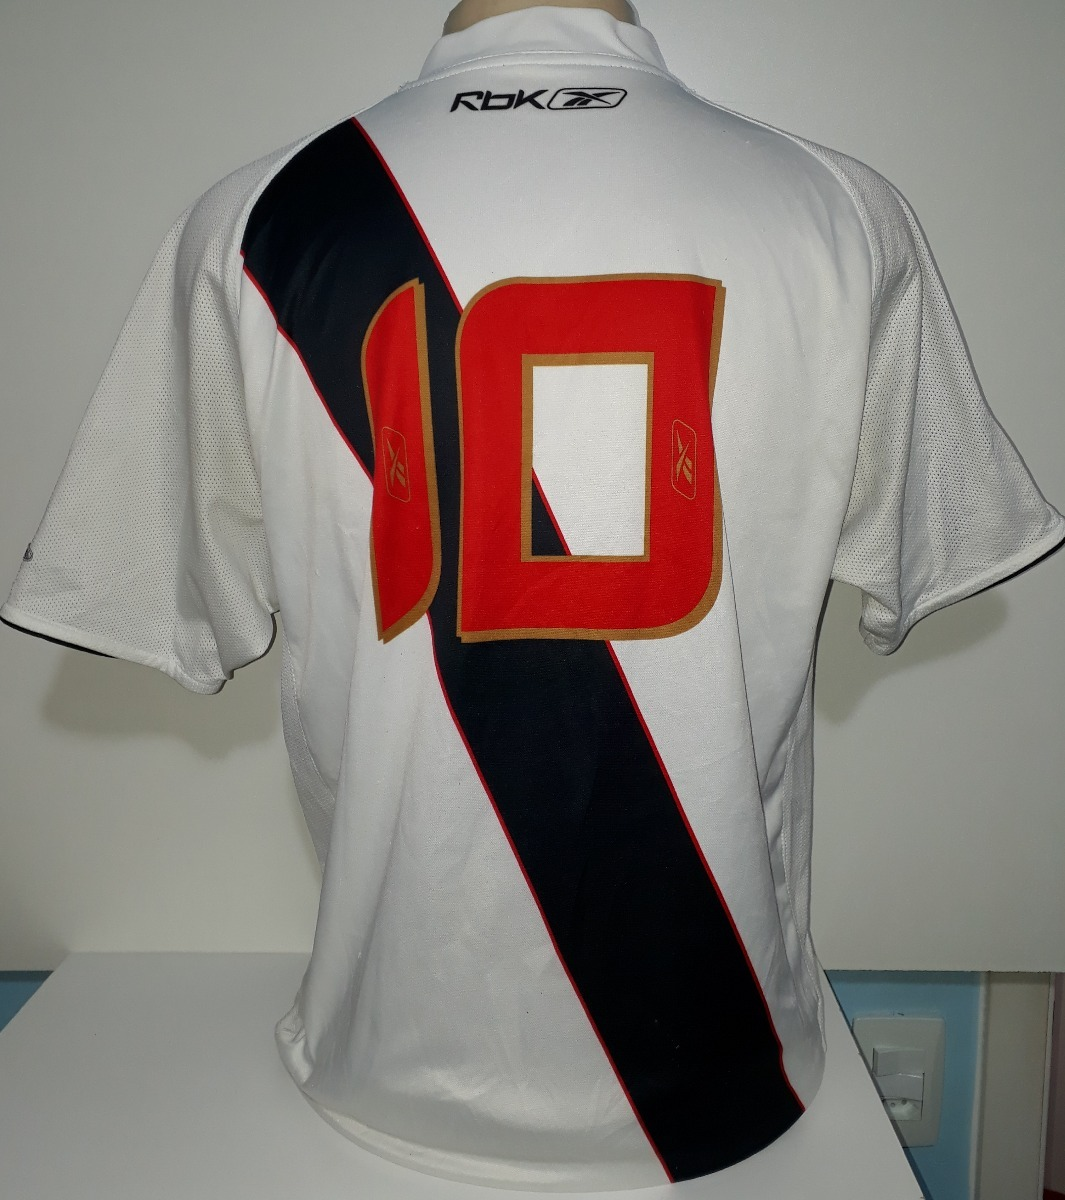 3529b9bd4b Camisa Do Vasco 2006   2007 Reebok Original - 07 - R  149